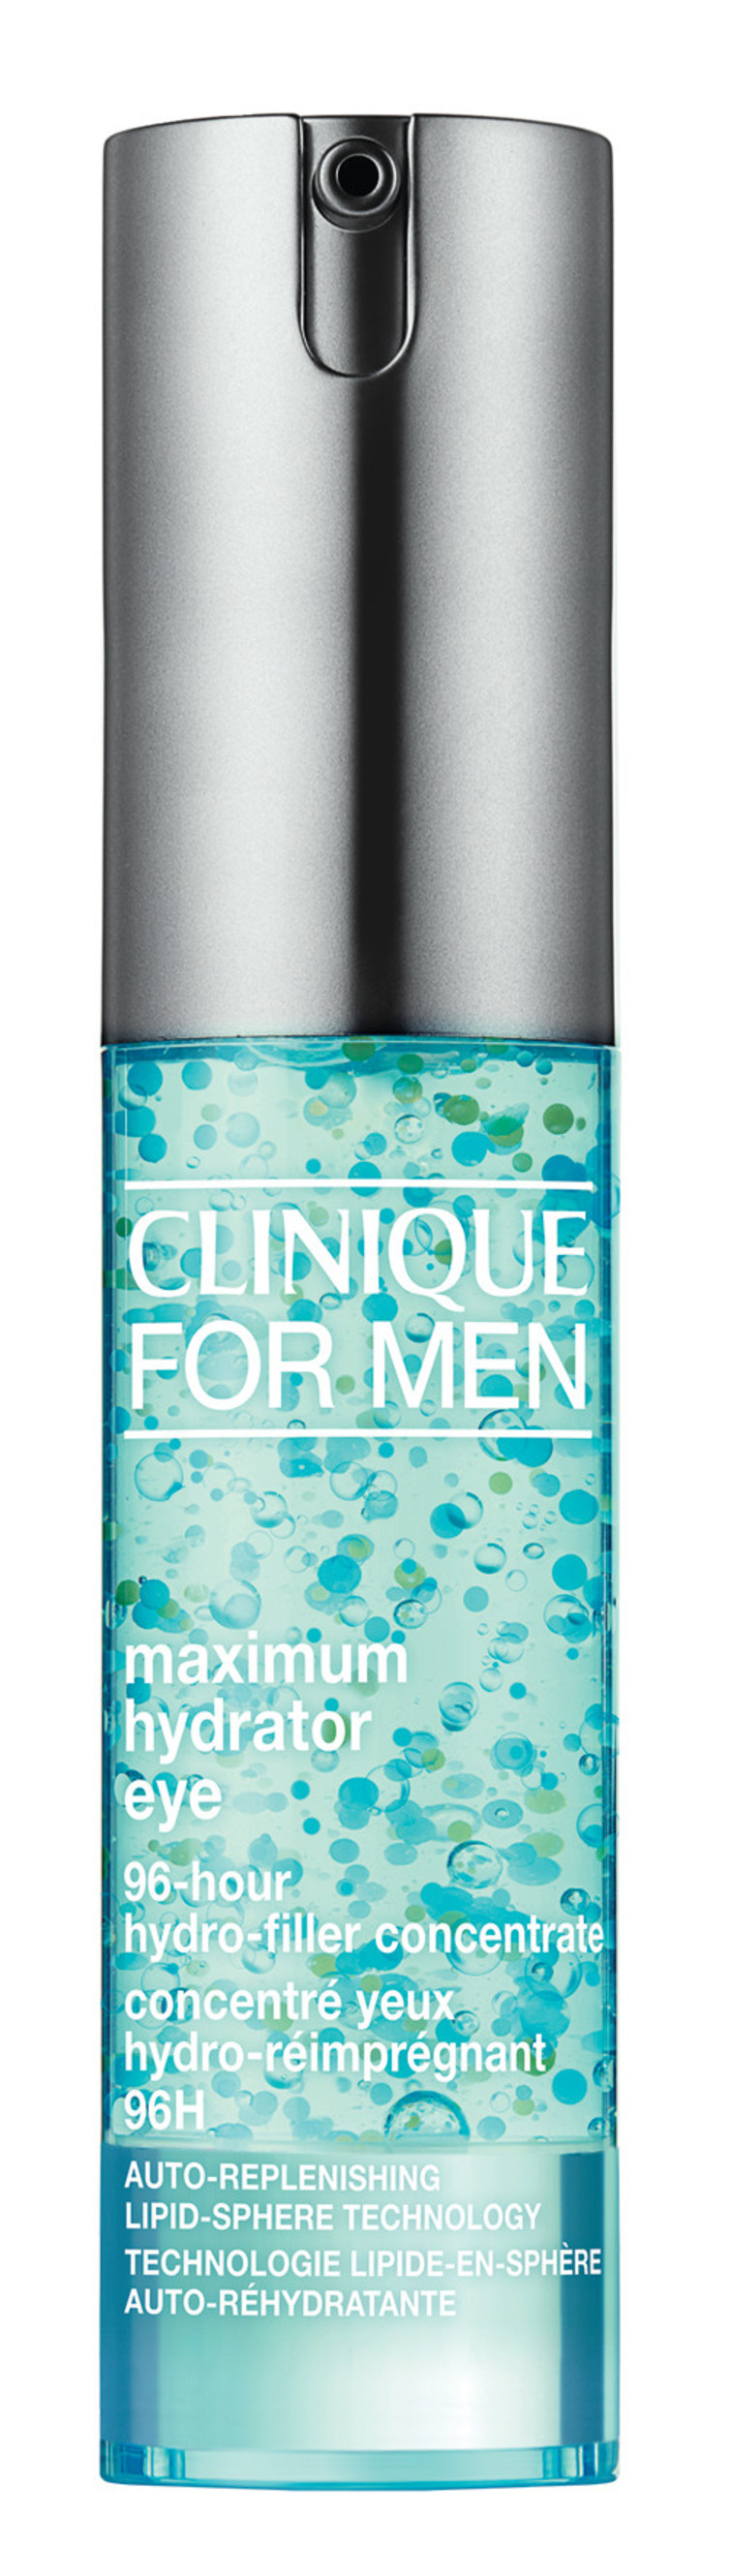 קרם עיניים לגבר Clinique for Men Maximum Hydrator Eye – 96-Hour Hydro Filler Concentrate, קליניק (צילום: יח''צ)